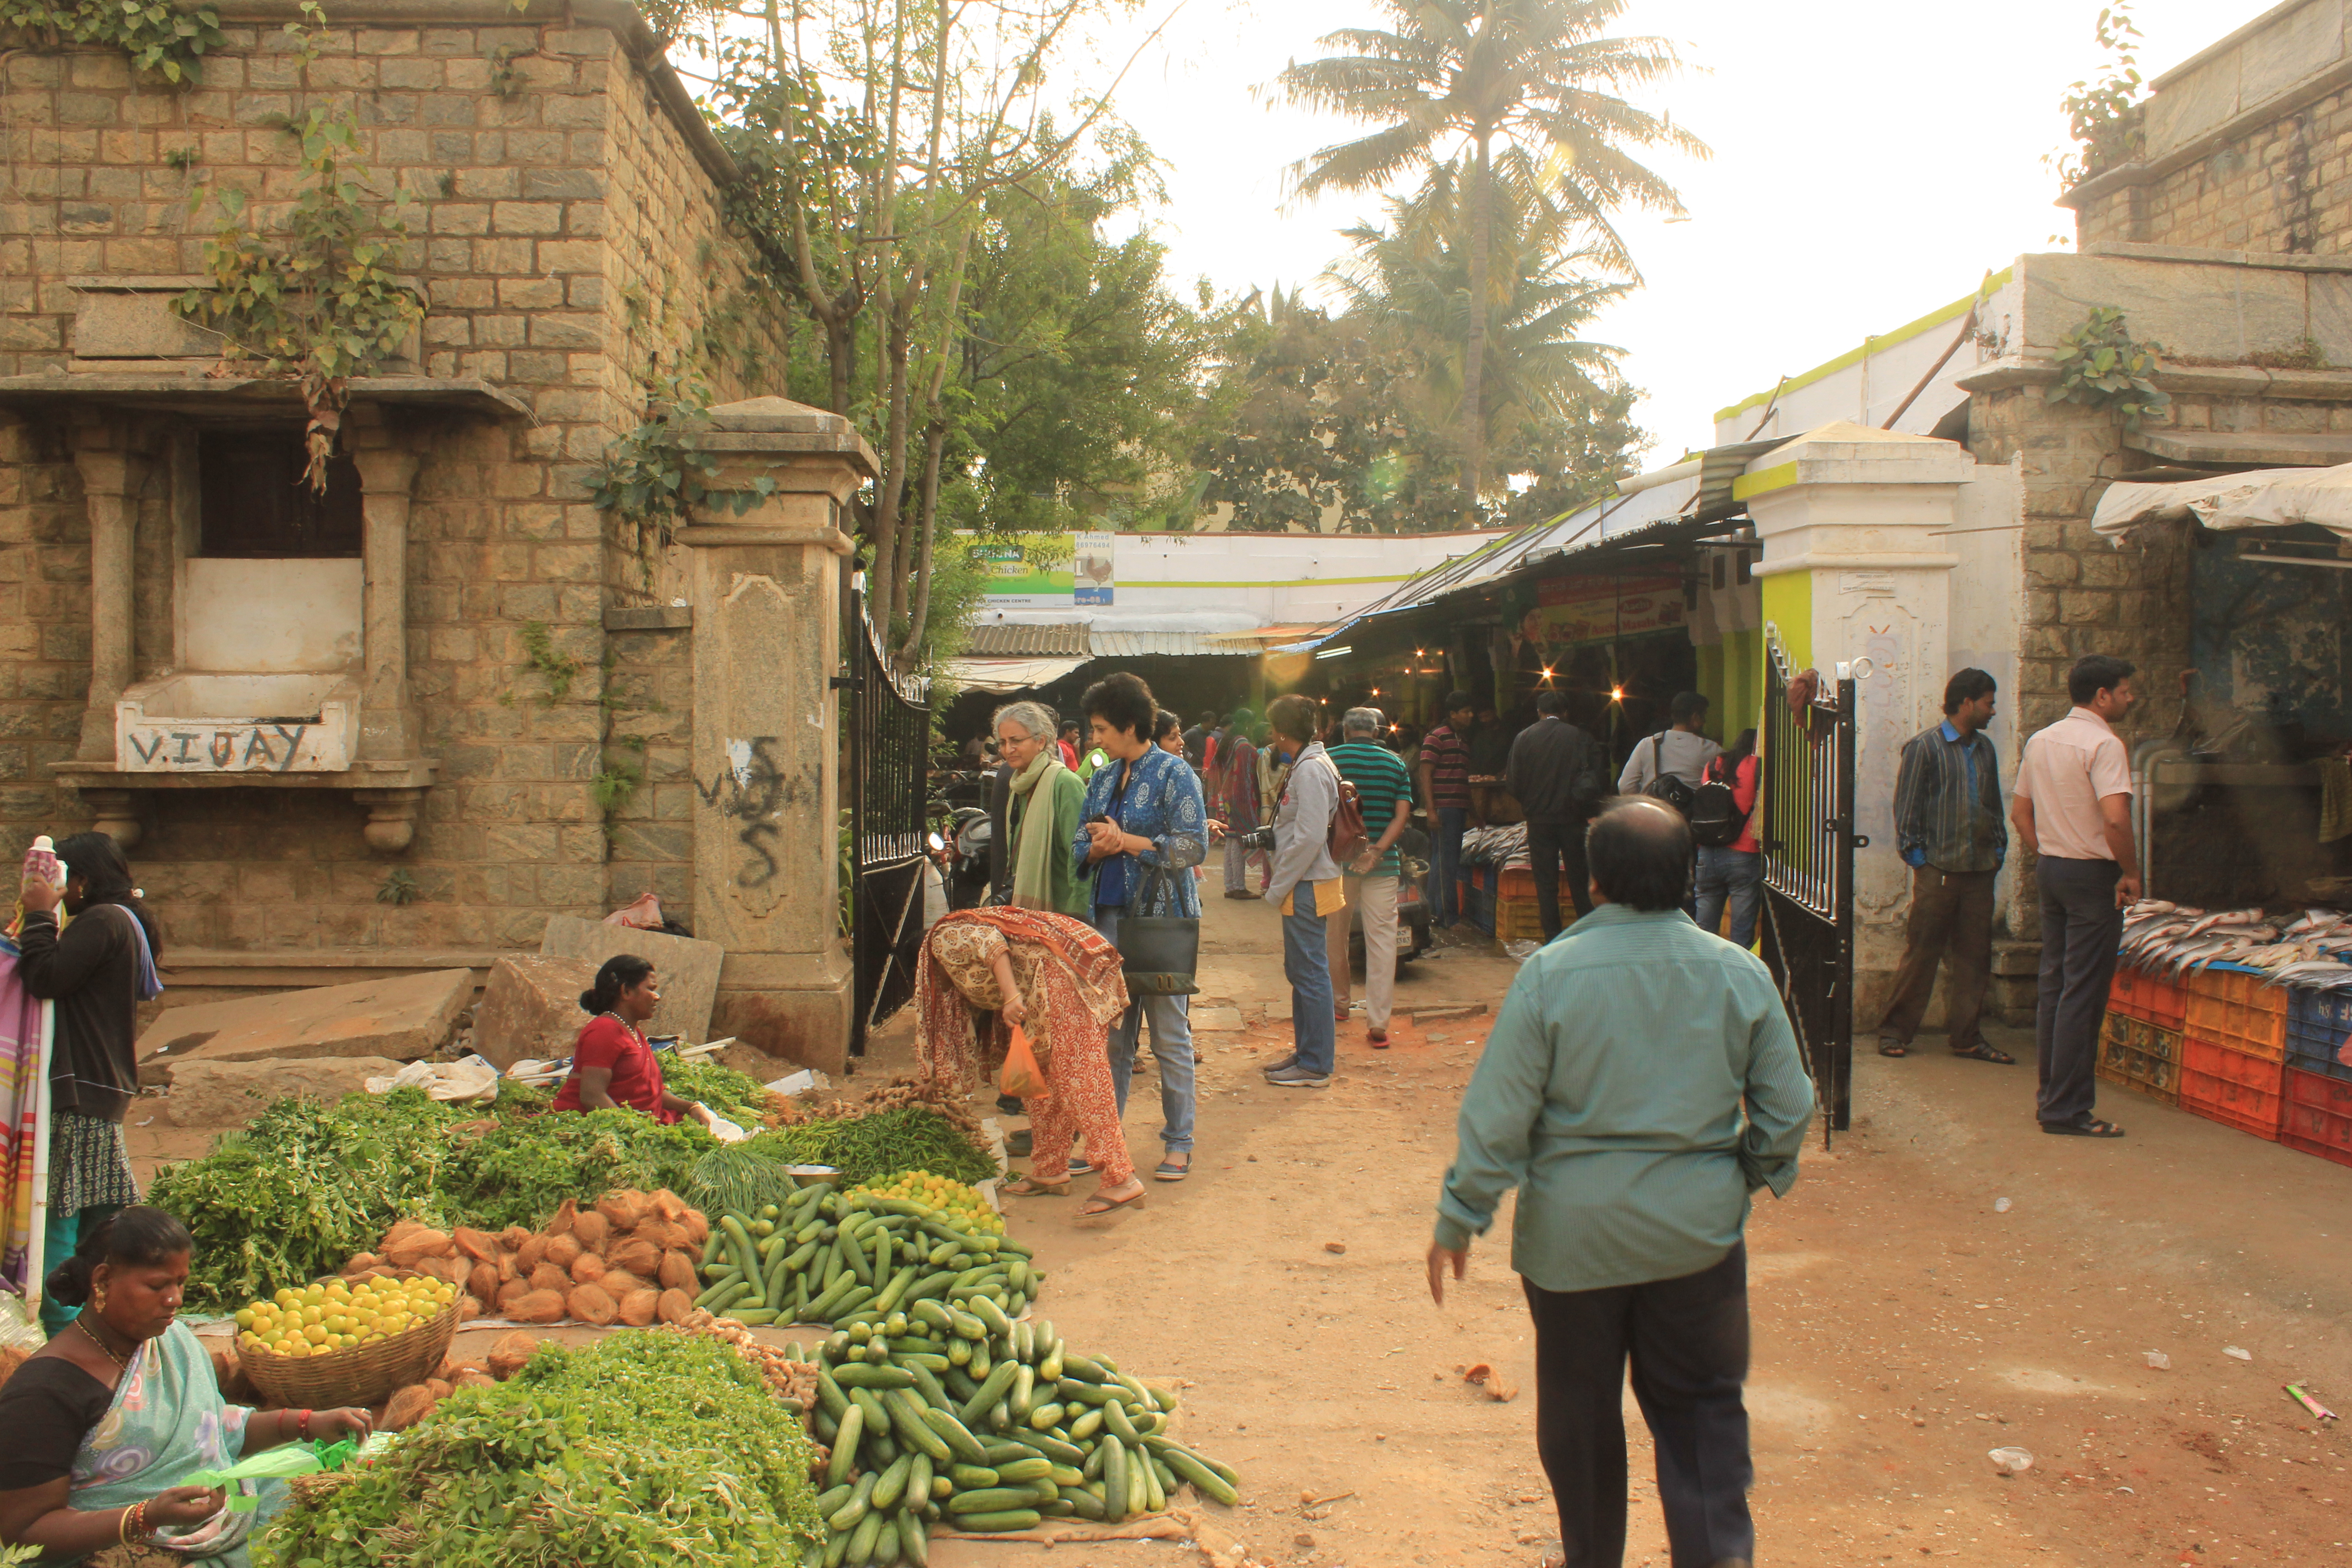 bangalore heritage market The Murphy town market now